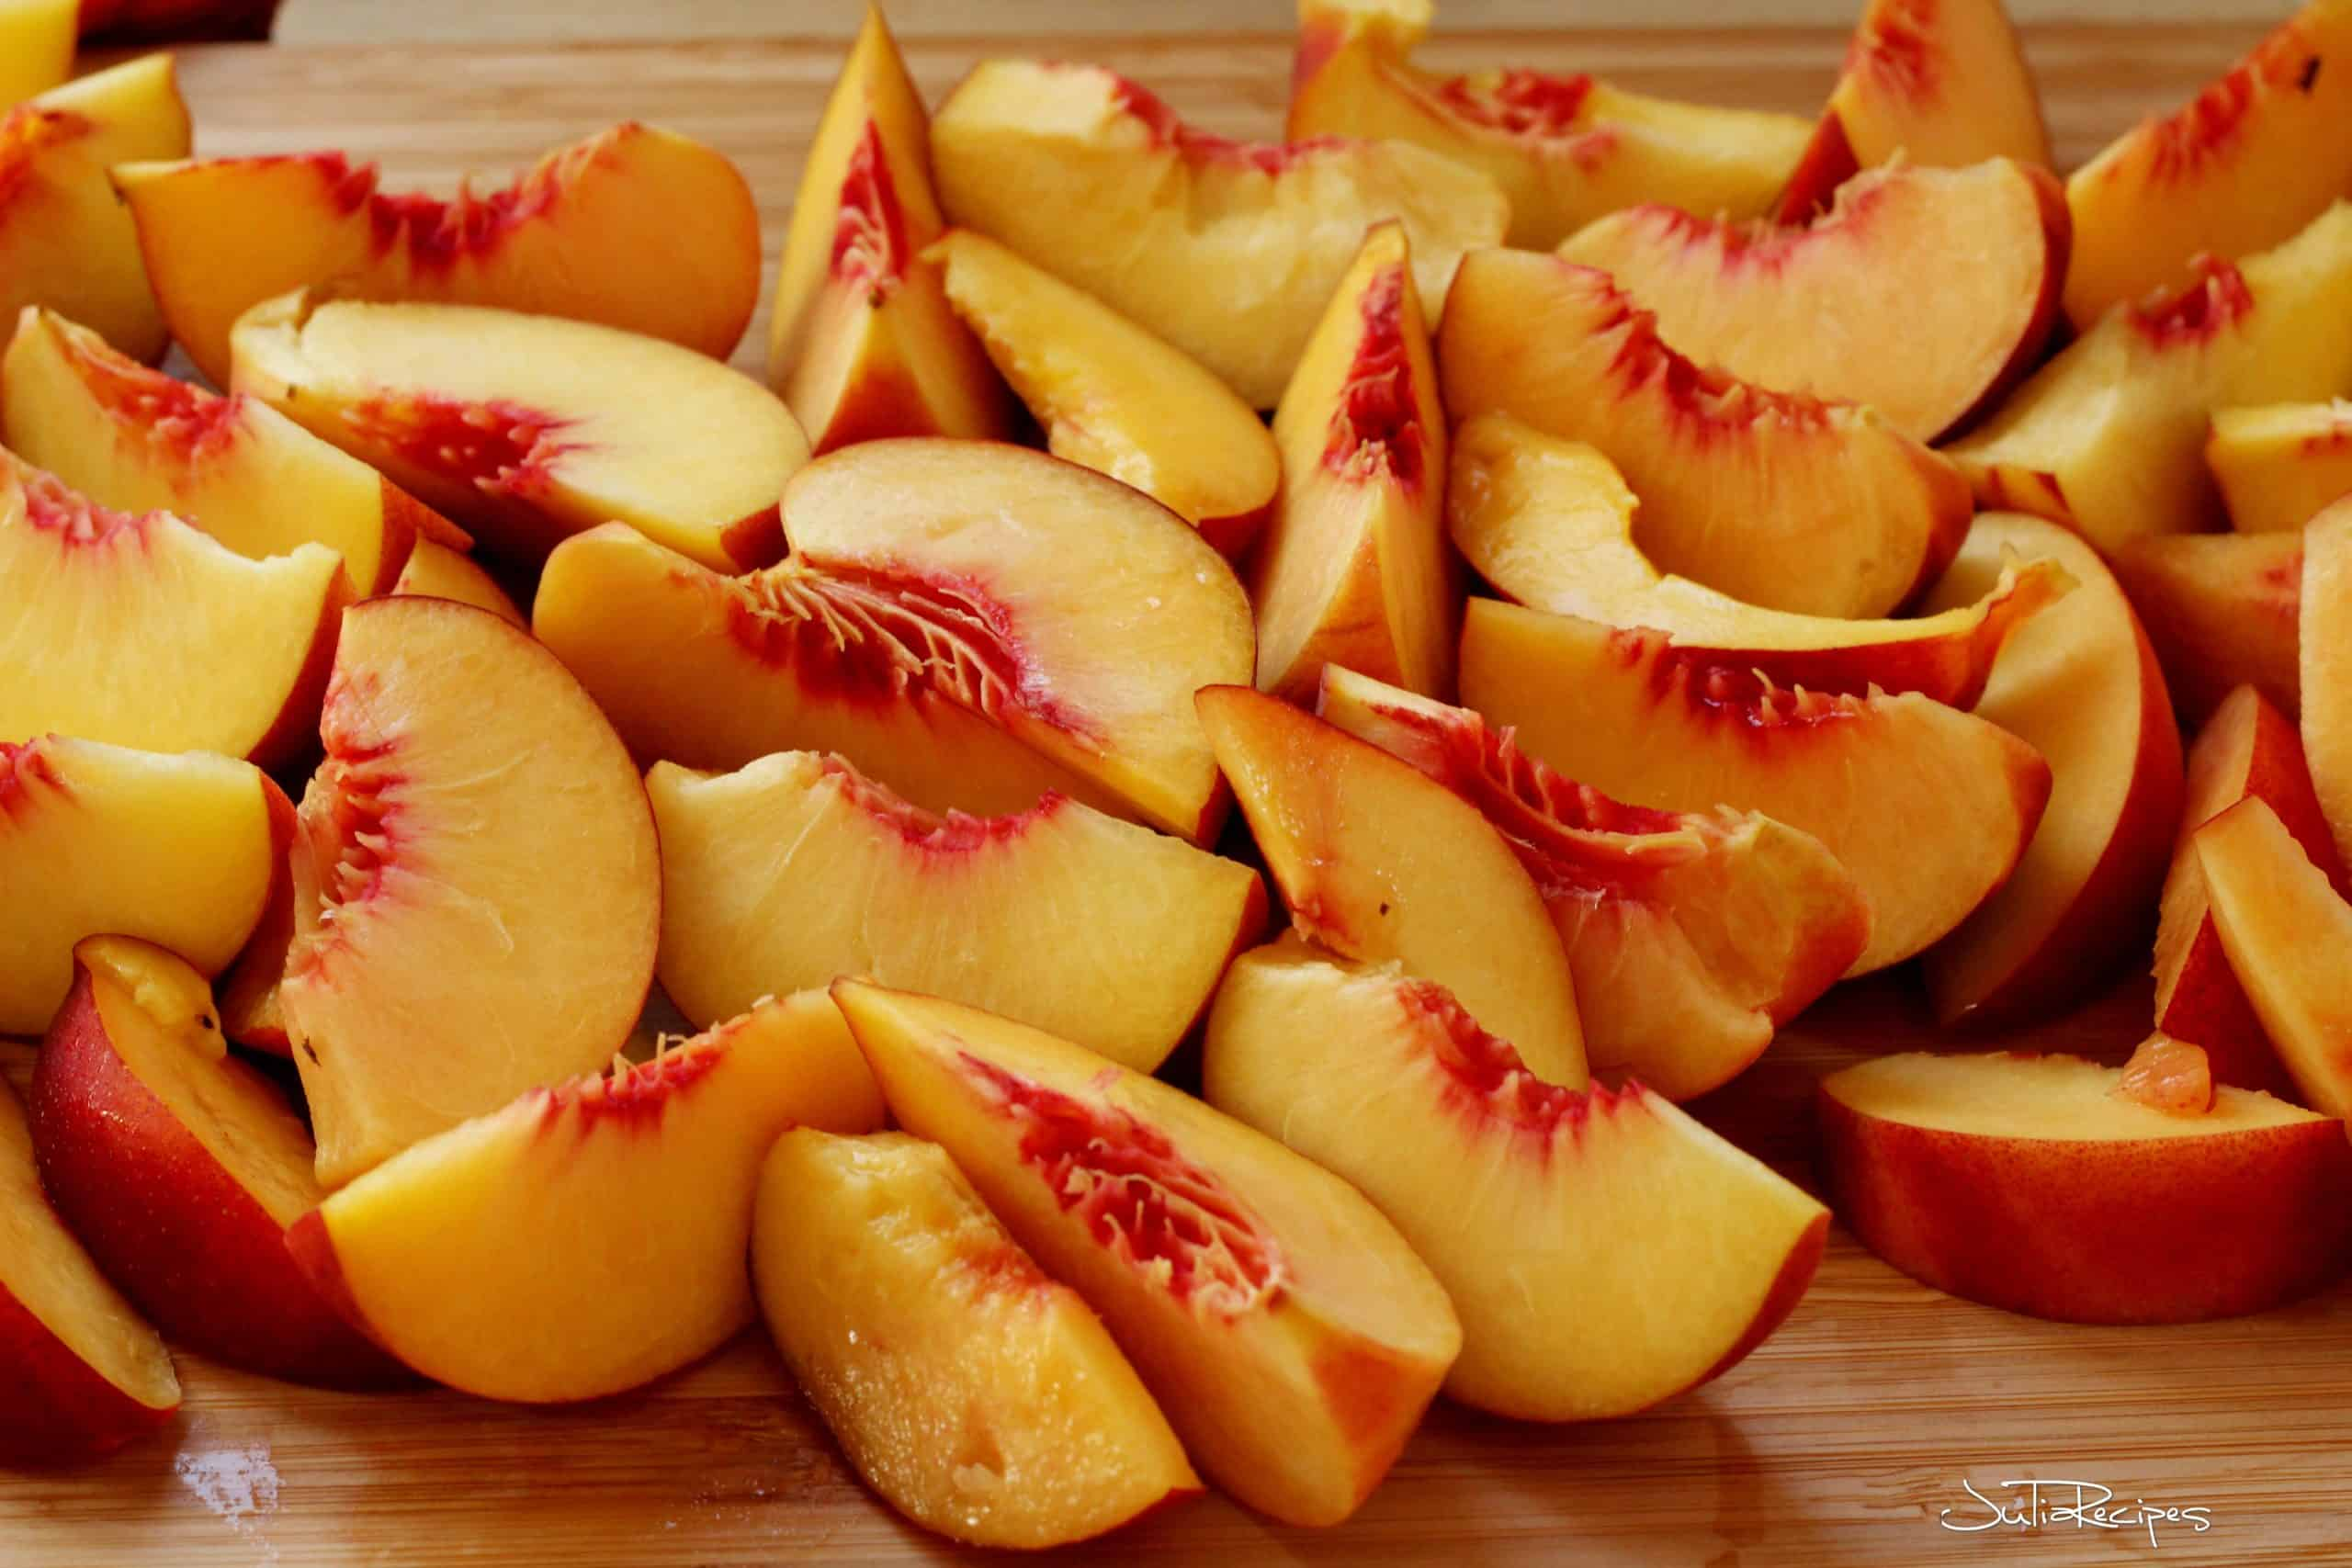 sliced fresh peaches on wooden board